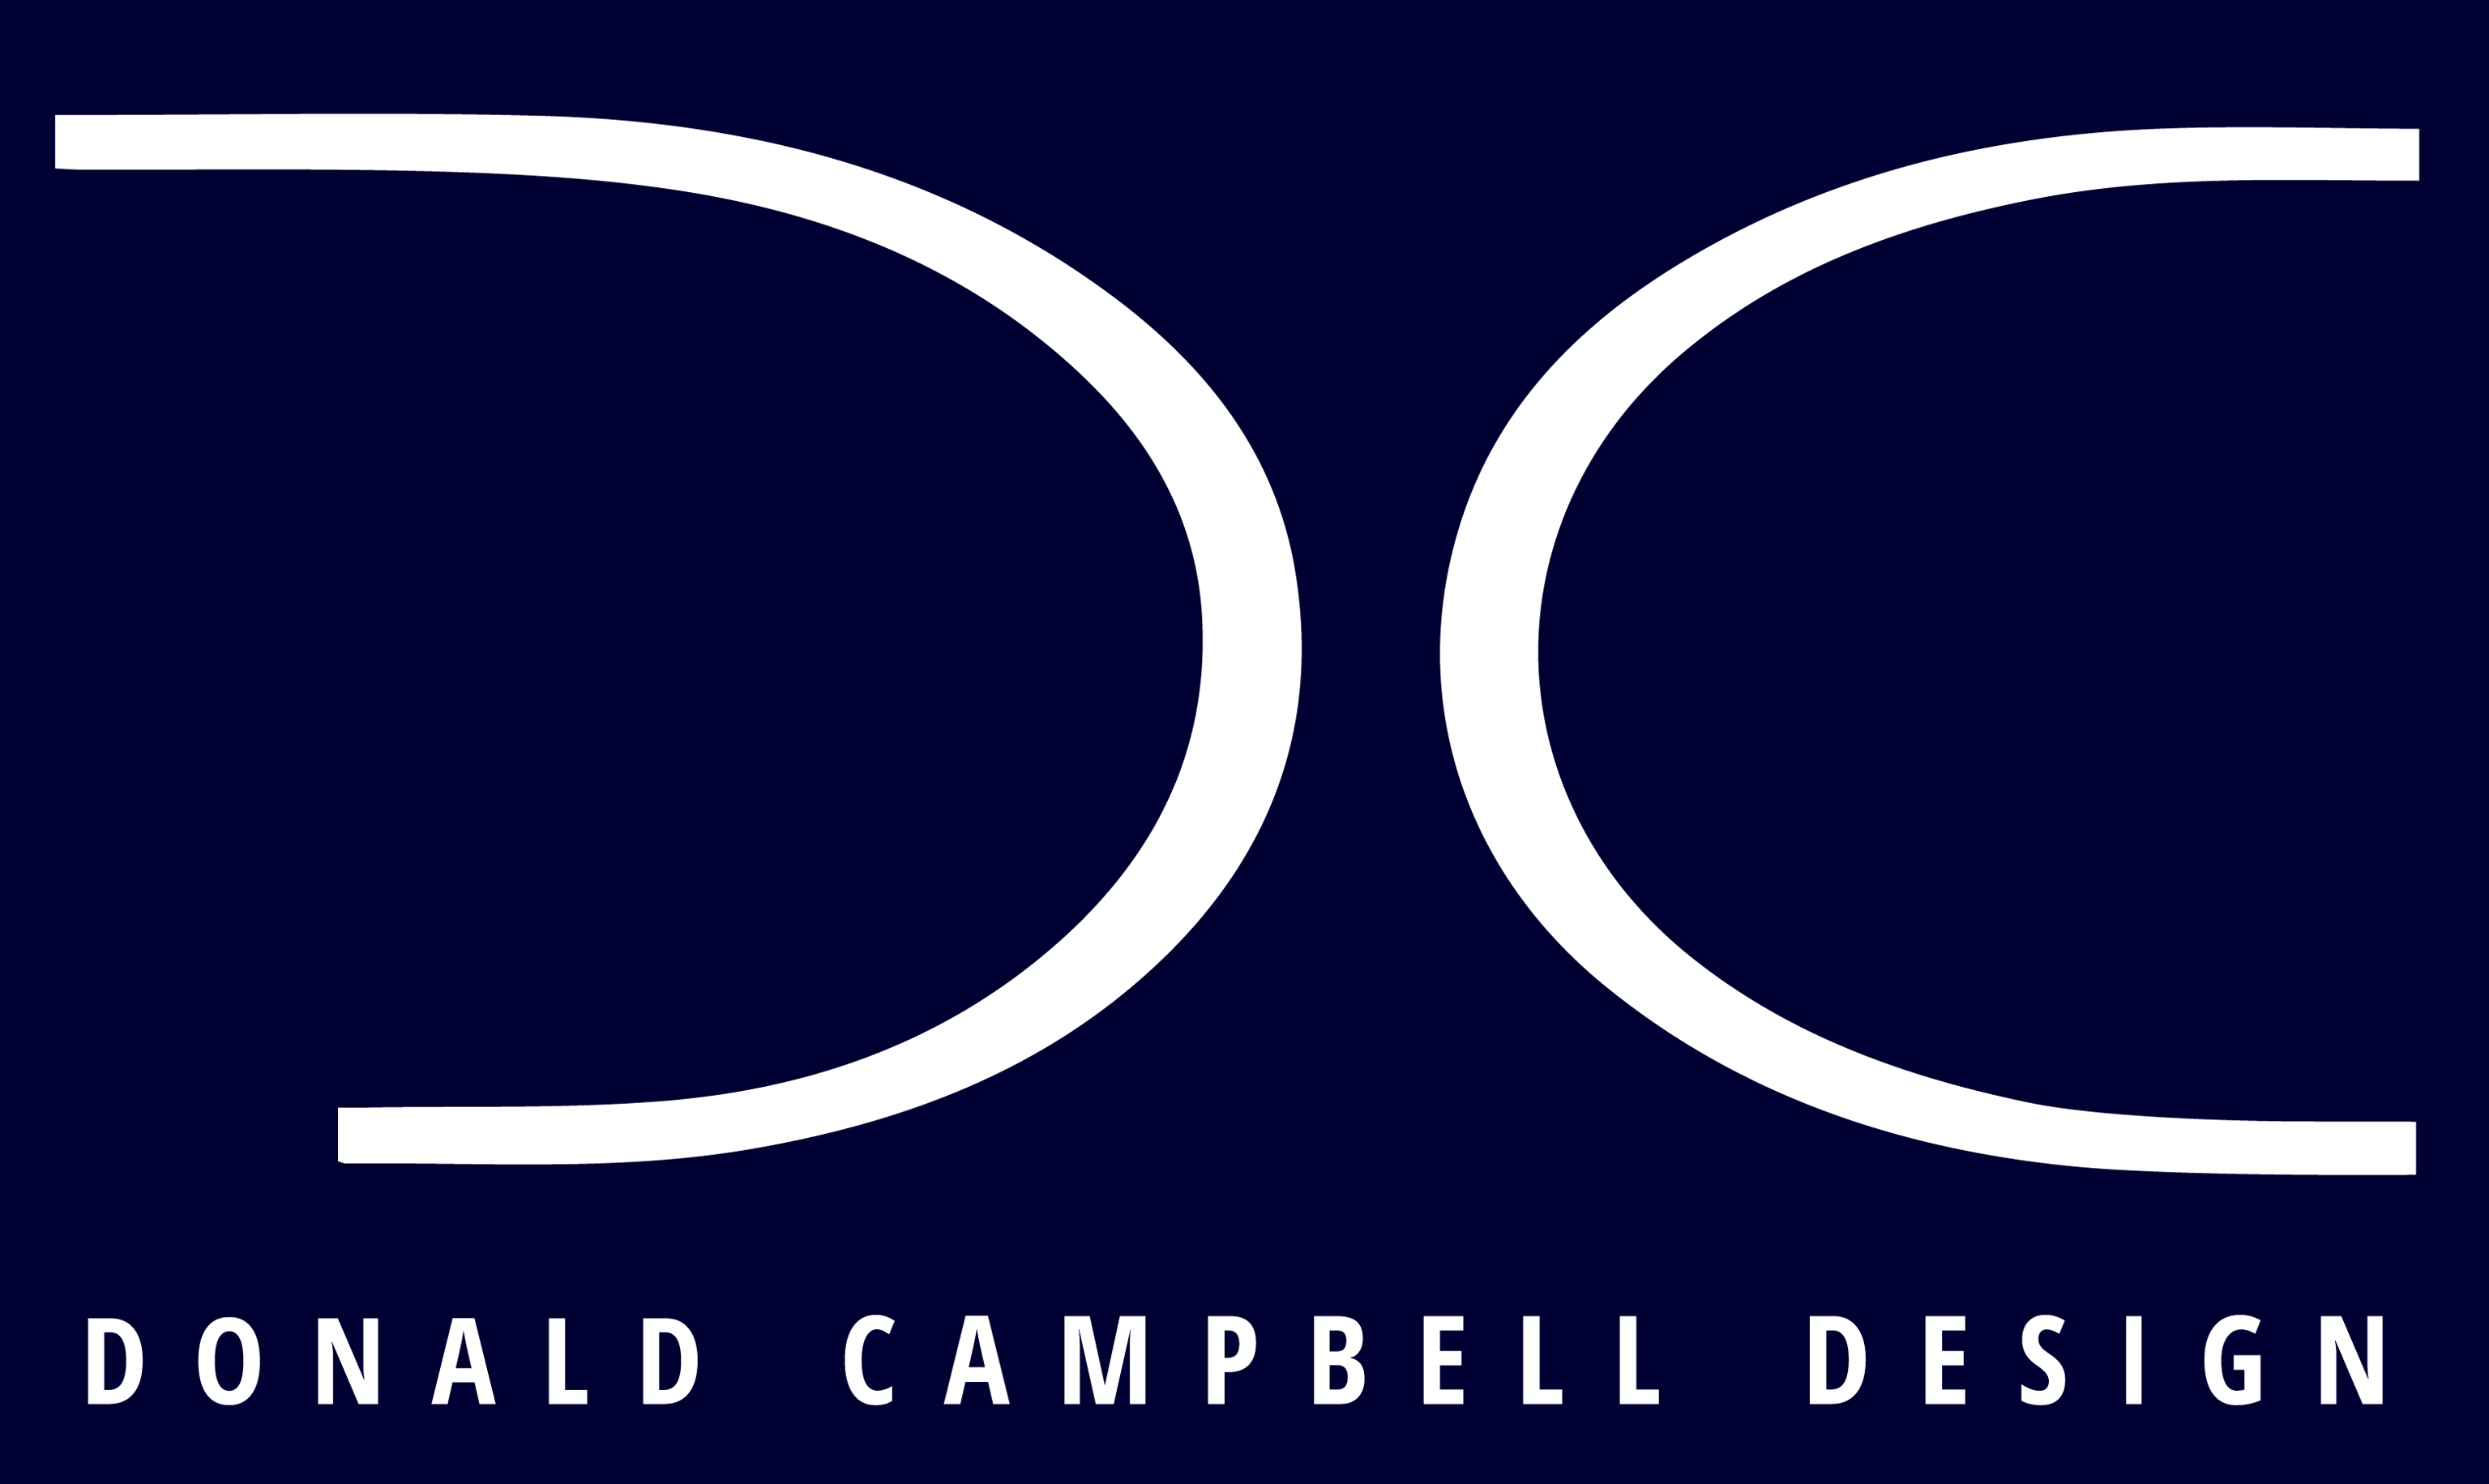 Donald Campbell Design